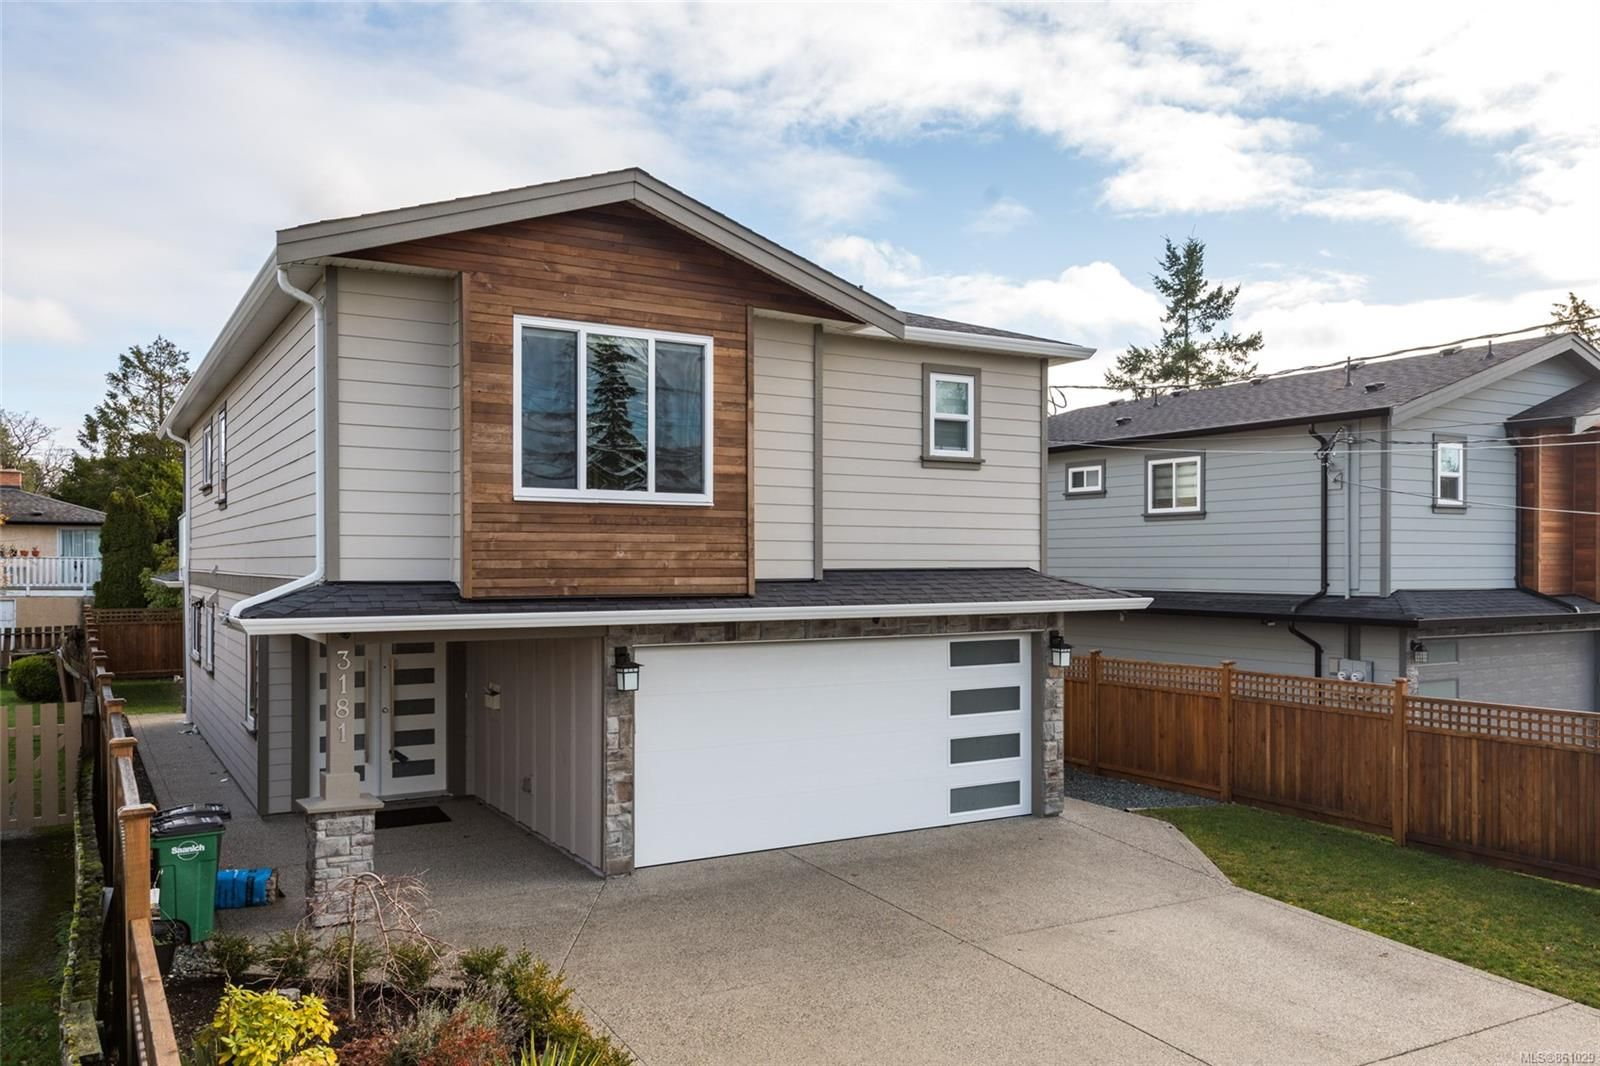 Main Photo: 3181 Kingsley St in : SE Camosun House for sale (Saanich East)  : MLS®# 861029